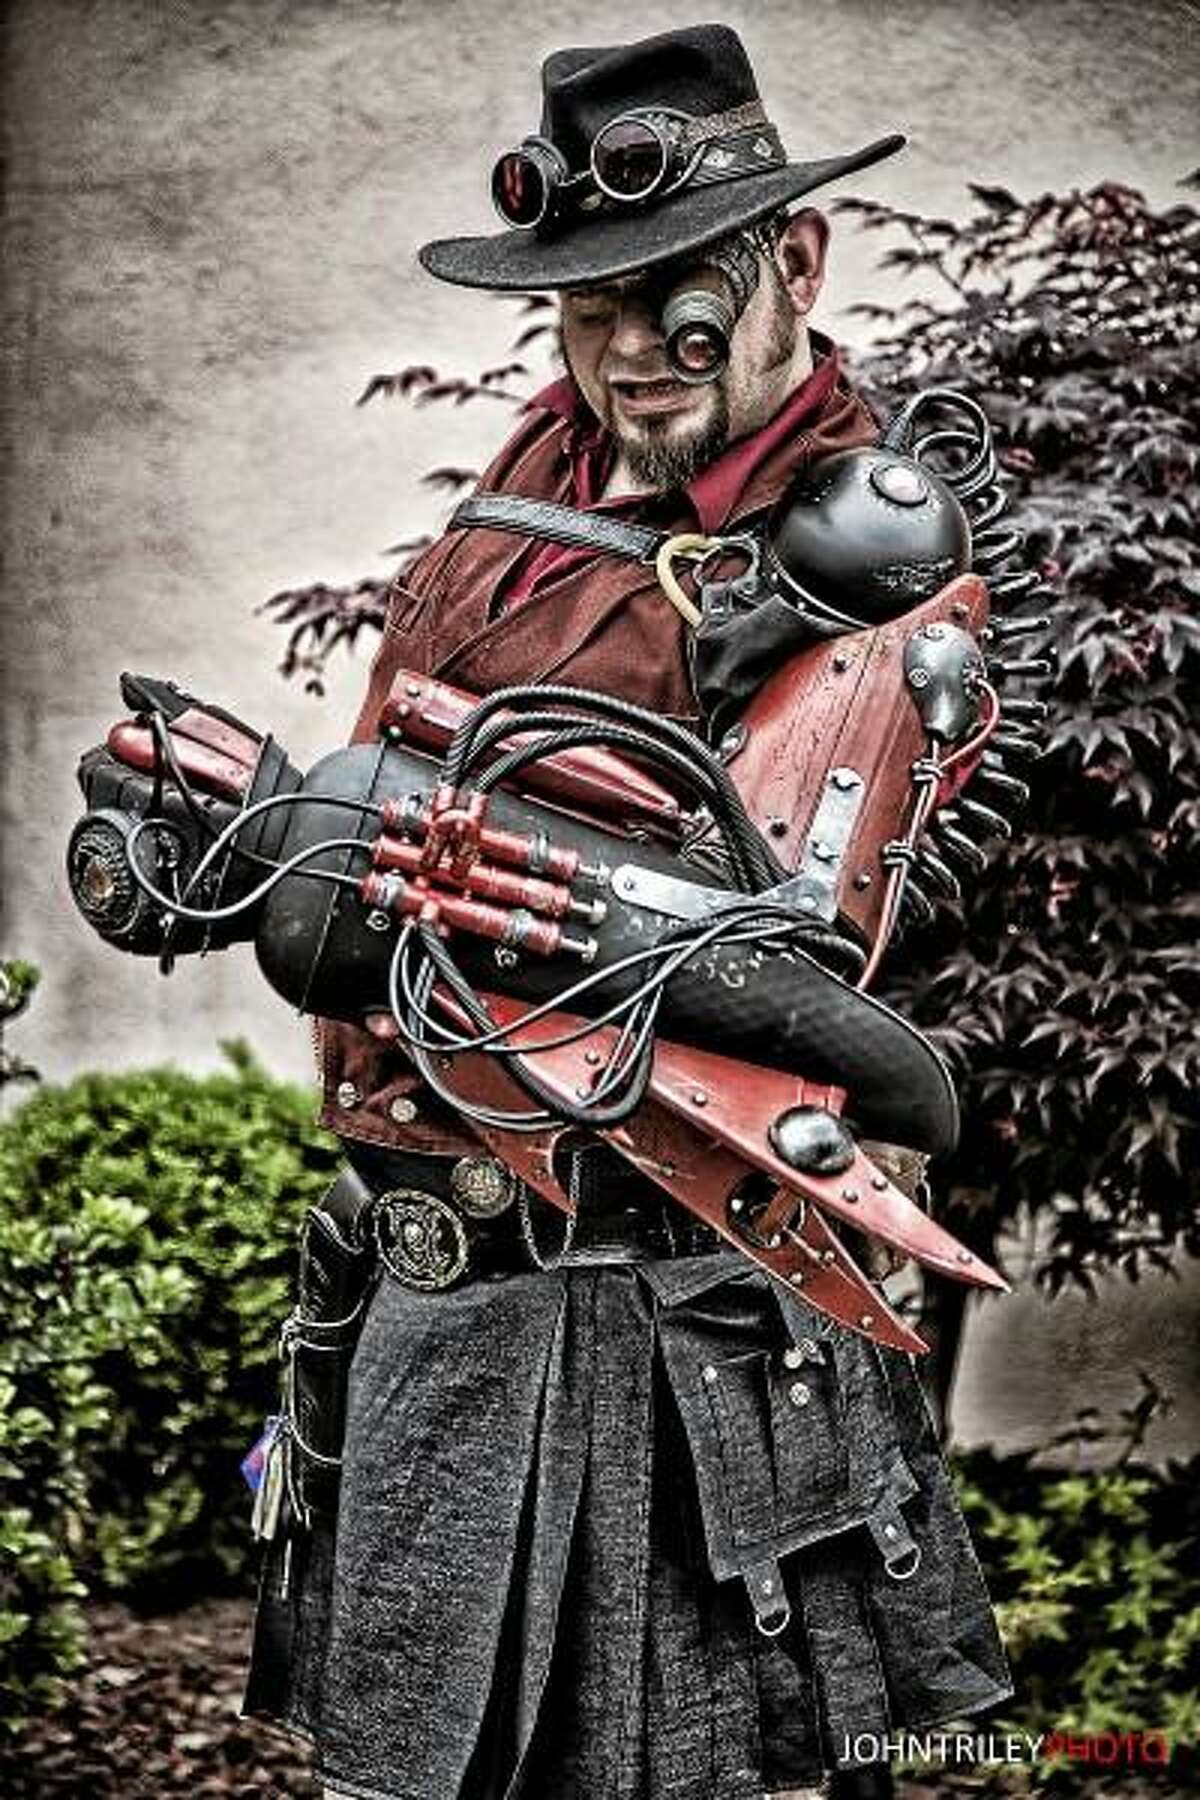 John T. Riley - Special to the Press Dr. Grymm, aka Joey Marsocci, is featured with a robotic arm and his character's costume that he designed and built.